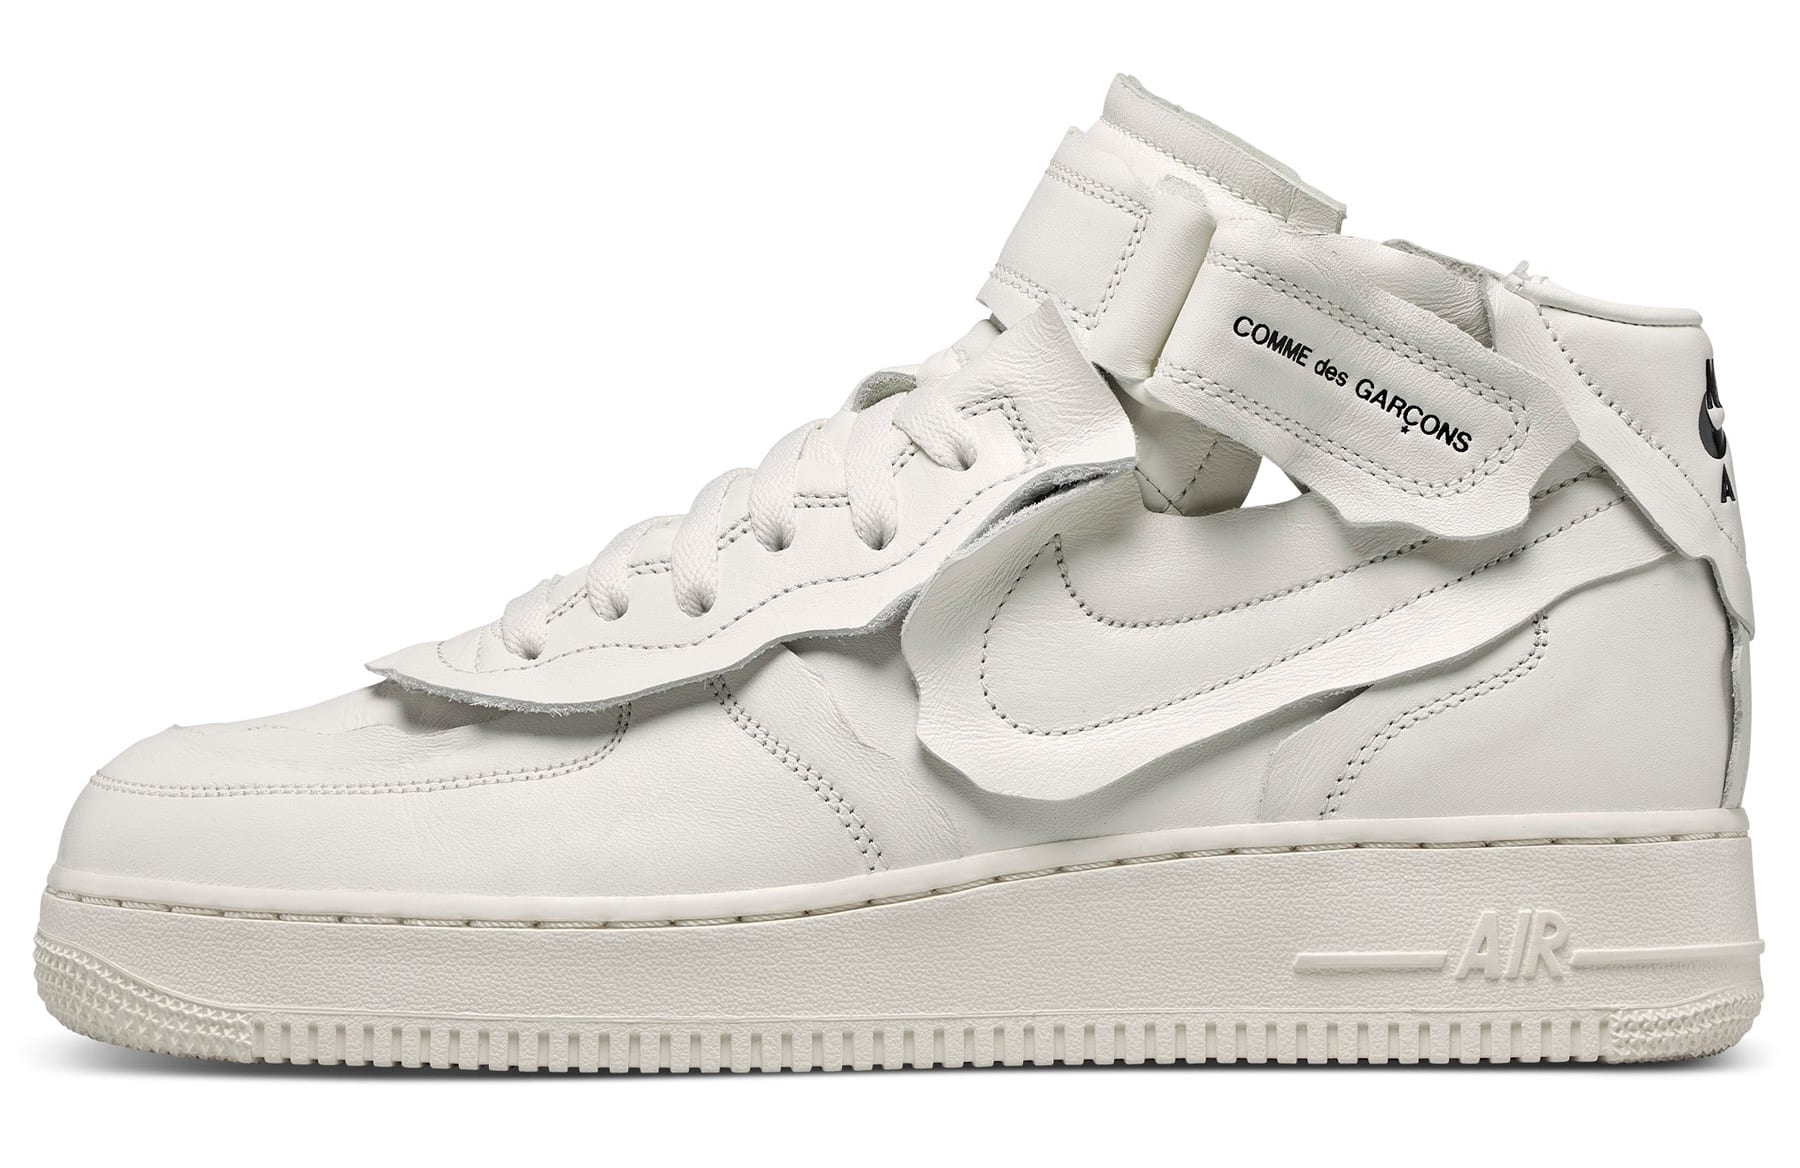 Comme Des Garcons x Nike Air Force 1 Mid 'White' F/W 20 Lateral